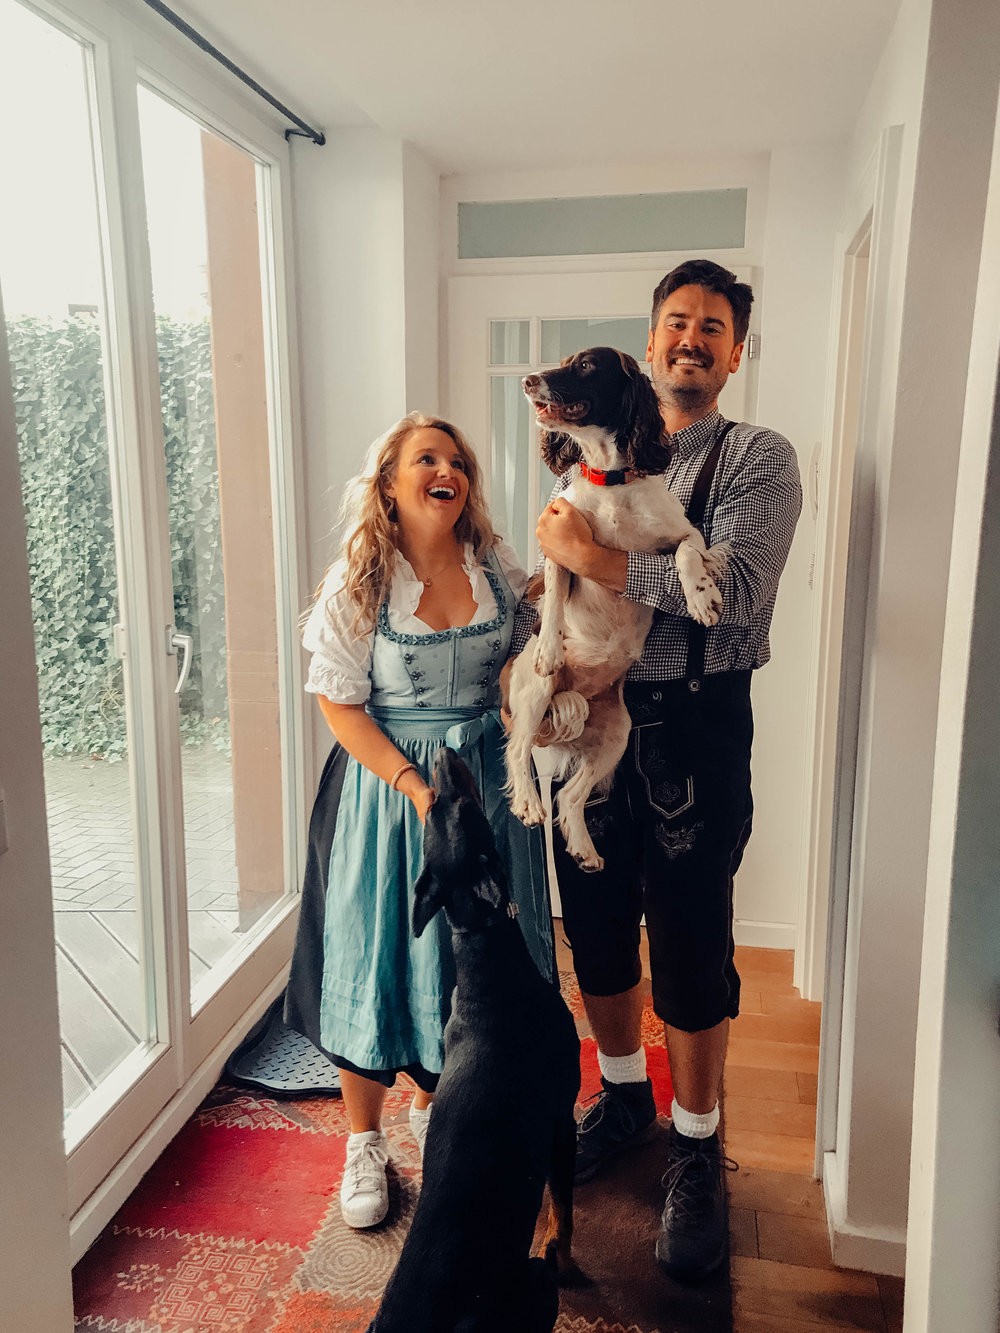 Helene & family preparing for Oktoberfest (HQ: yes, we're fully in puppy love too)